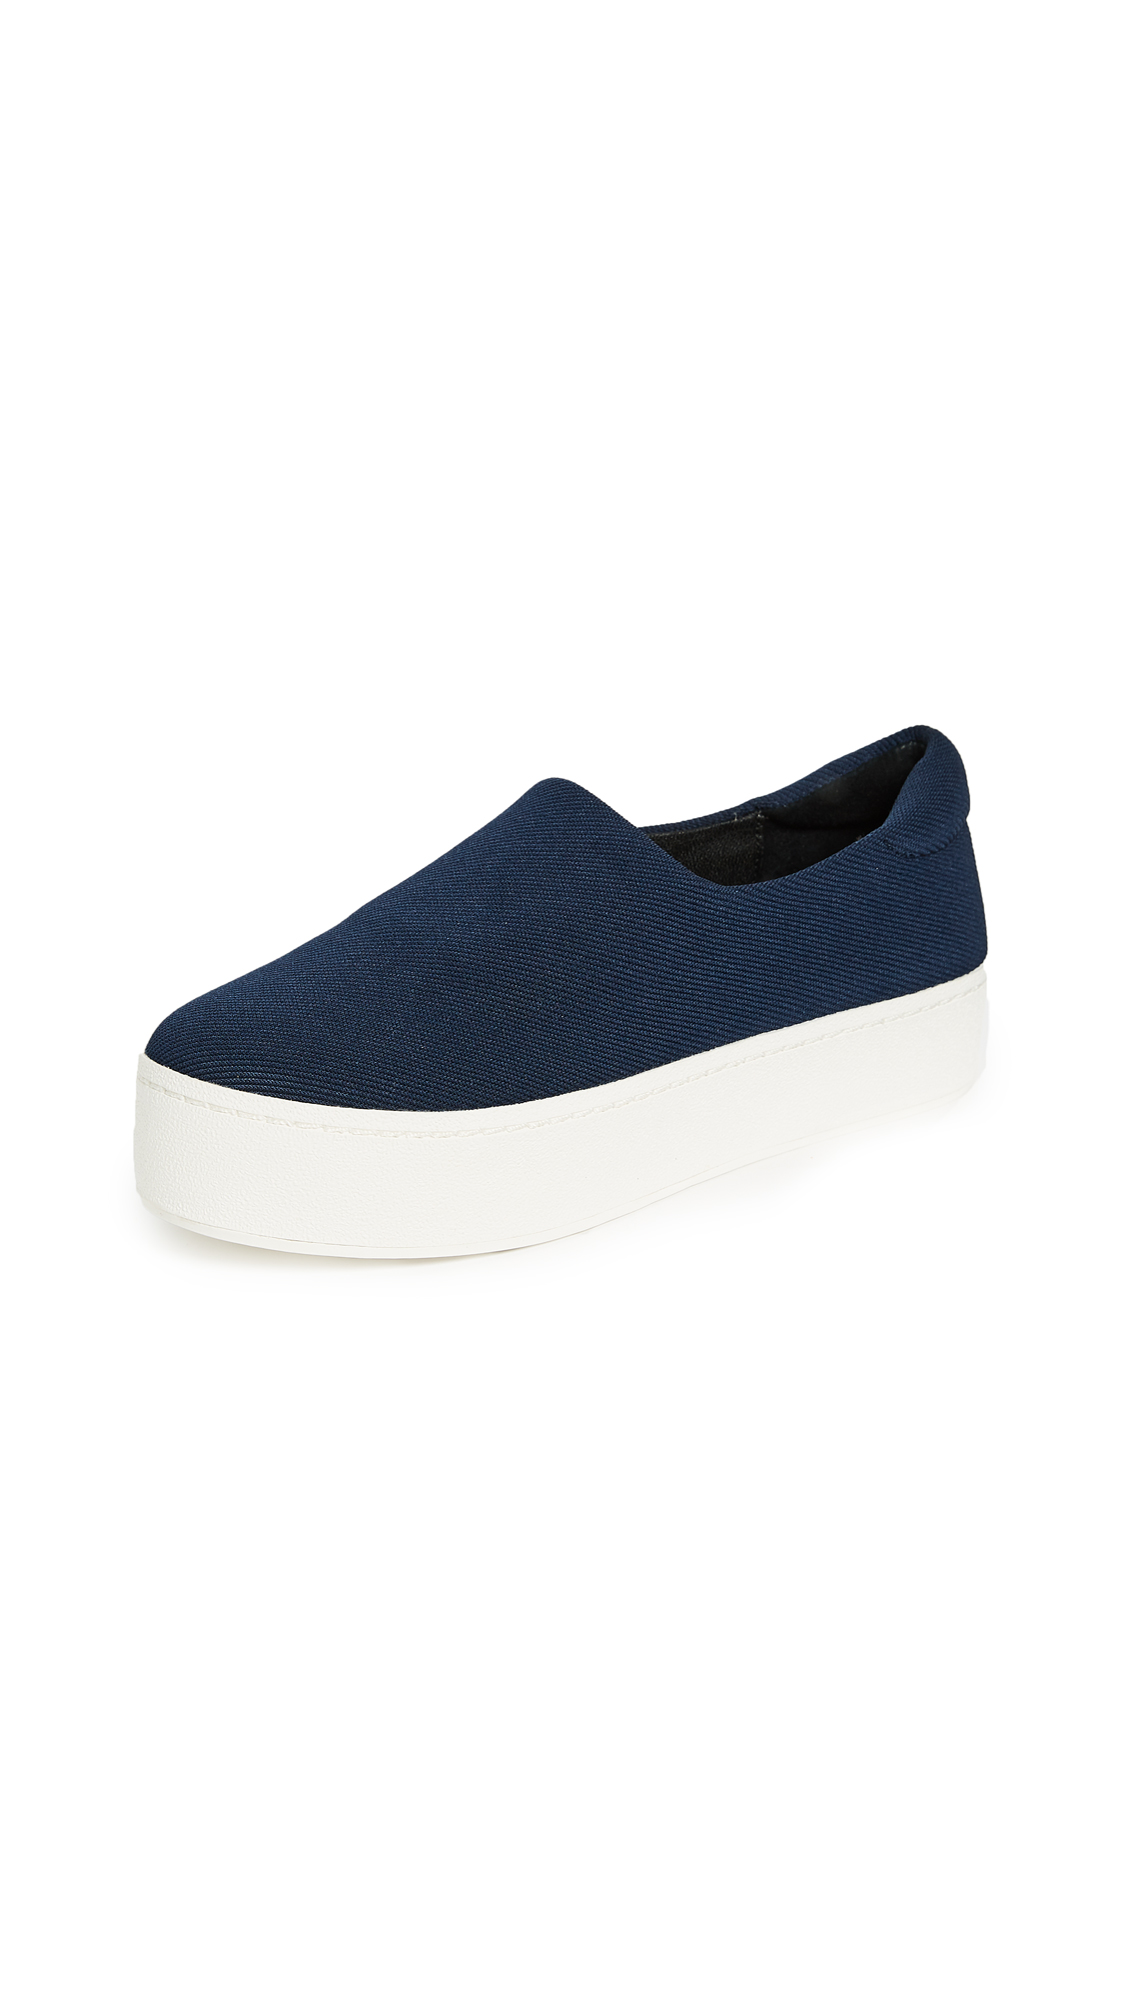 Opening Ceremony Cici Slip On Platform Sneakers - Navy